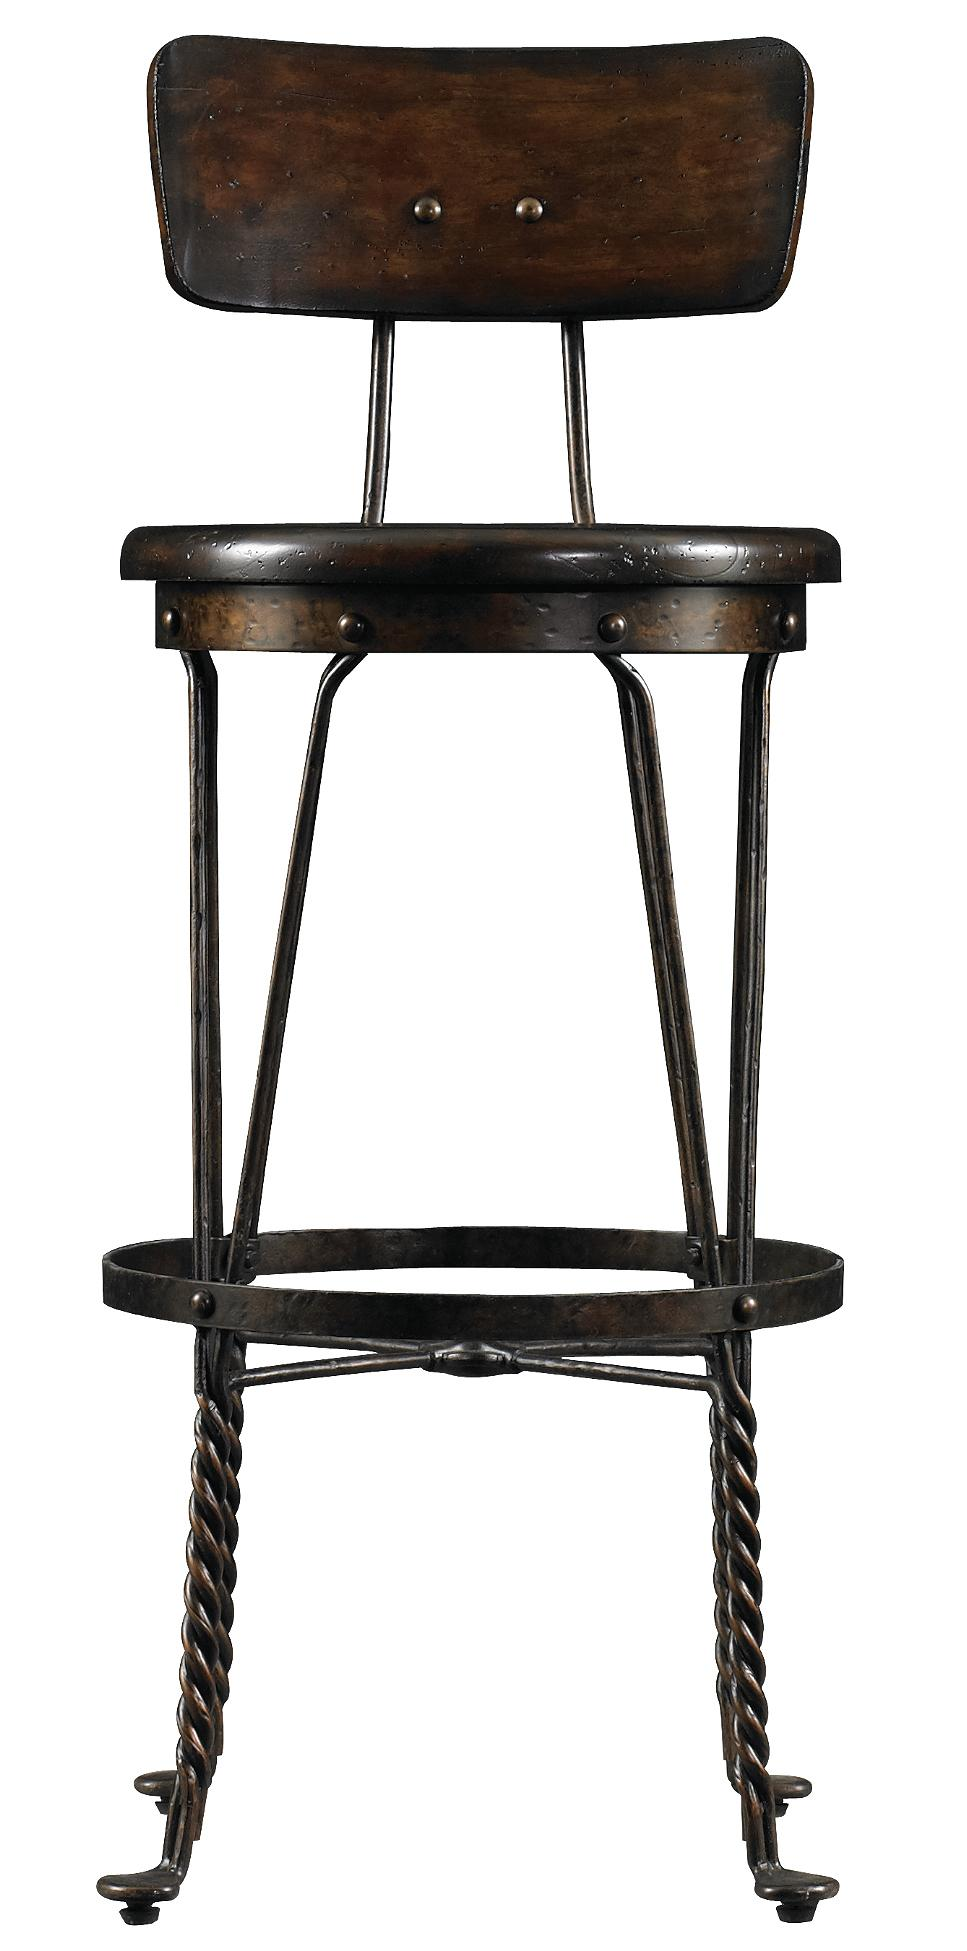 Stanley Furniture European Farmhouse Artisan's Apprentice Barstool - Item Number: 018-11-83